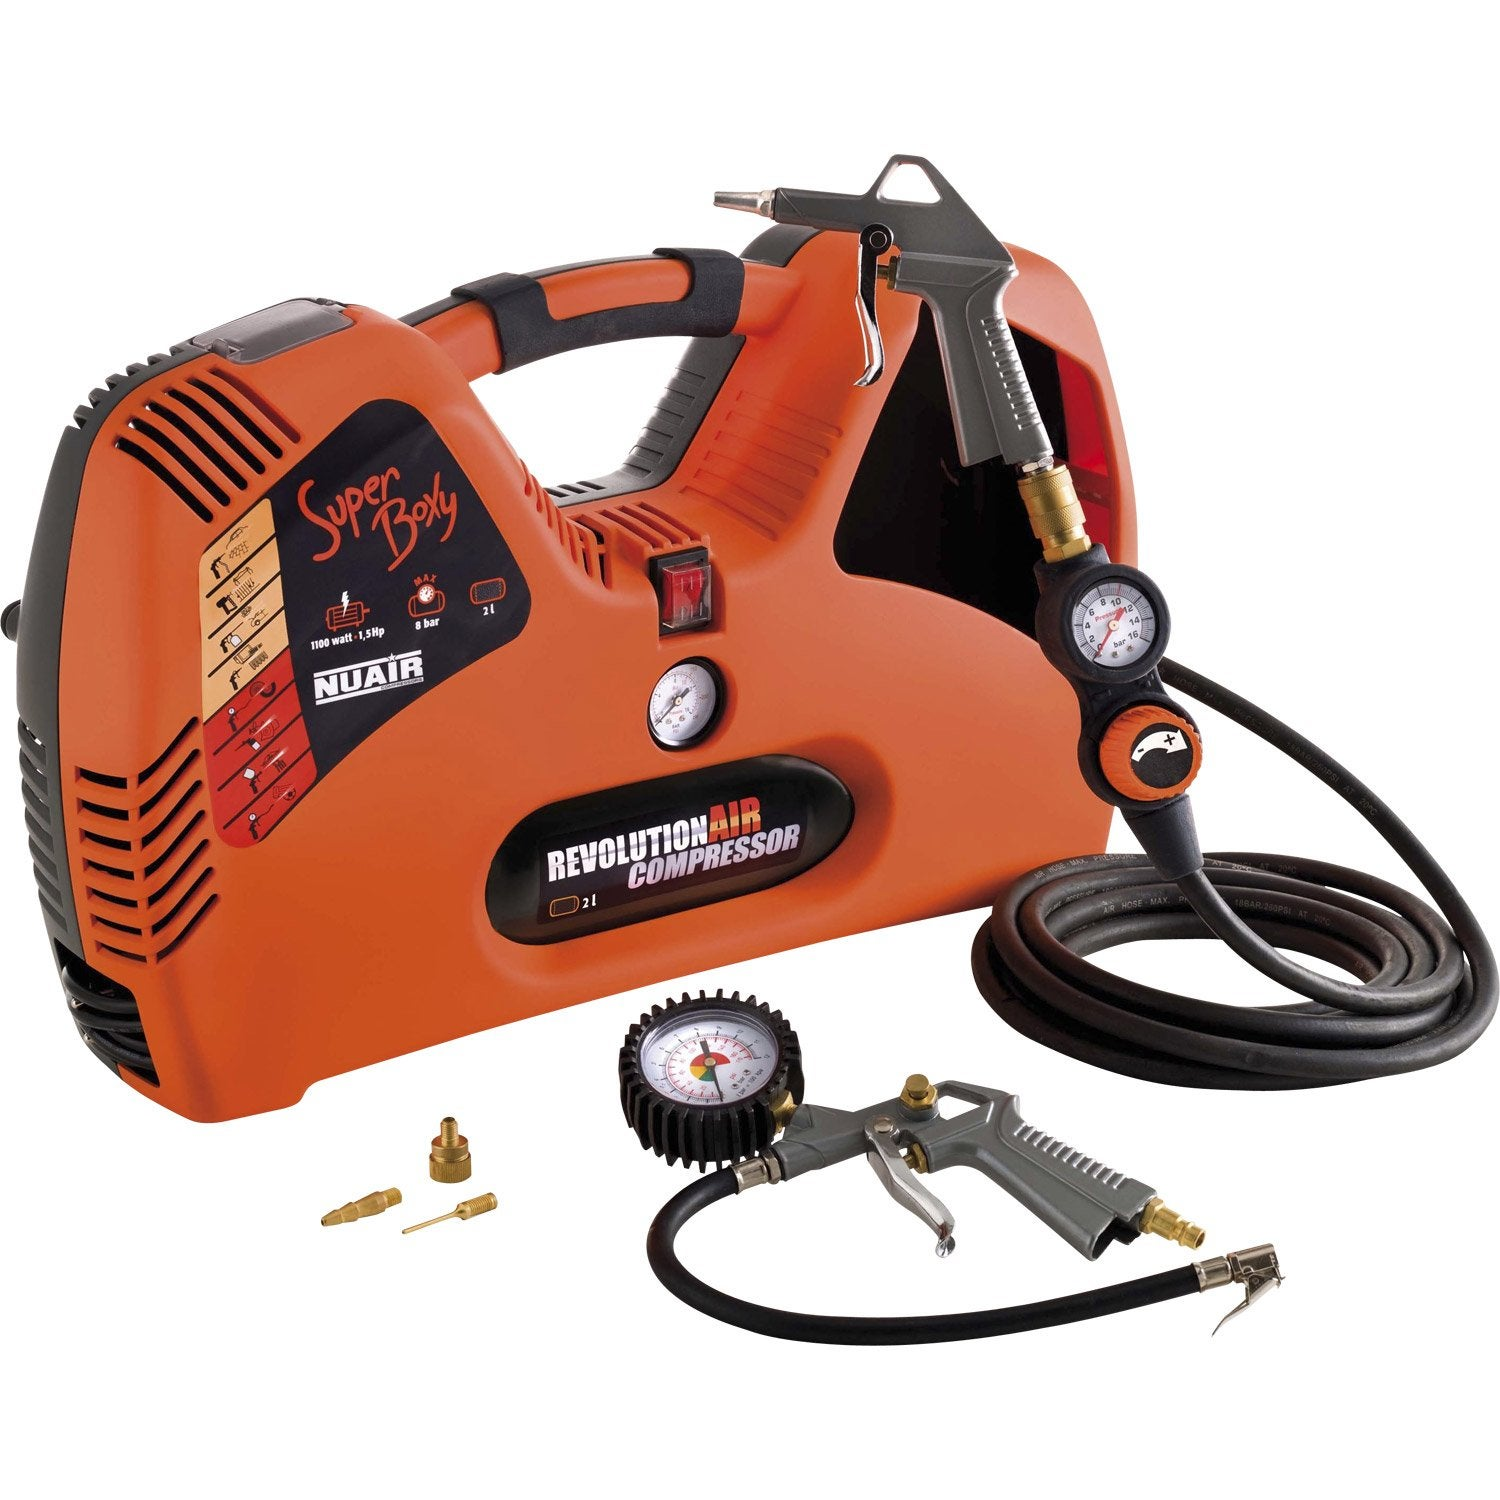 Compresseur de loisirs revolution 39 air 2 l 1 5 cv leroy merlin - Compresseur d air leroy merlin ...